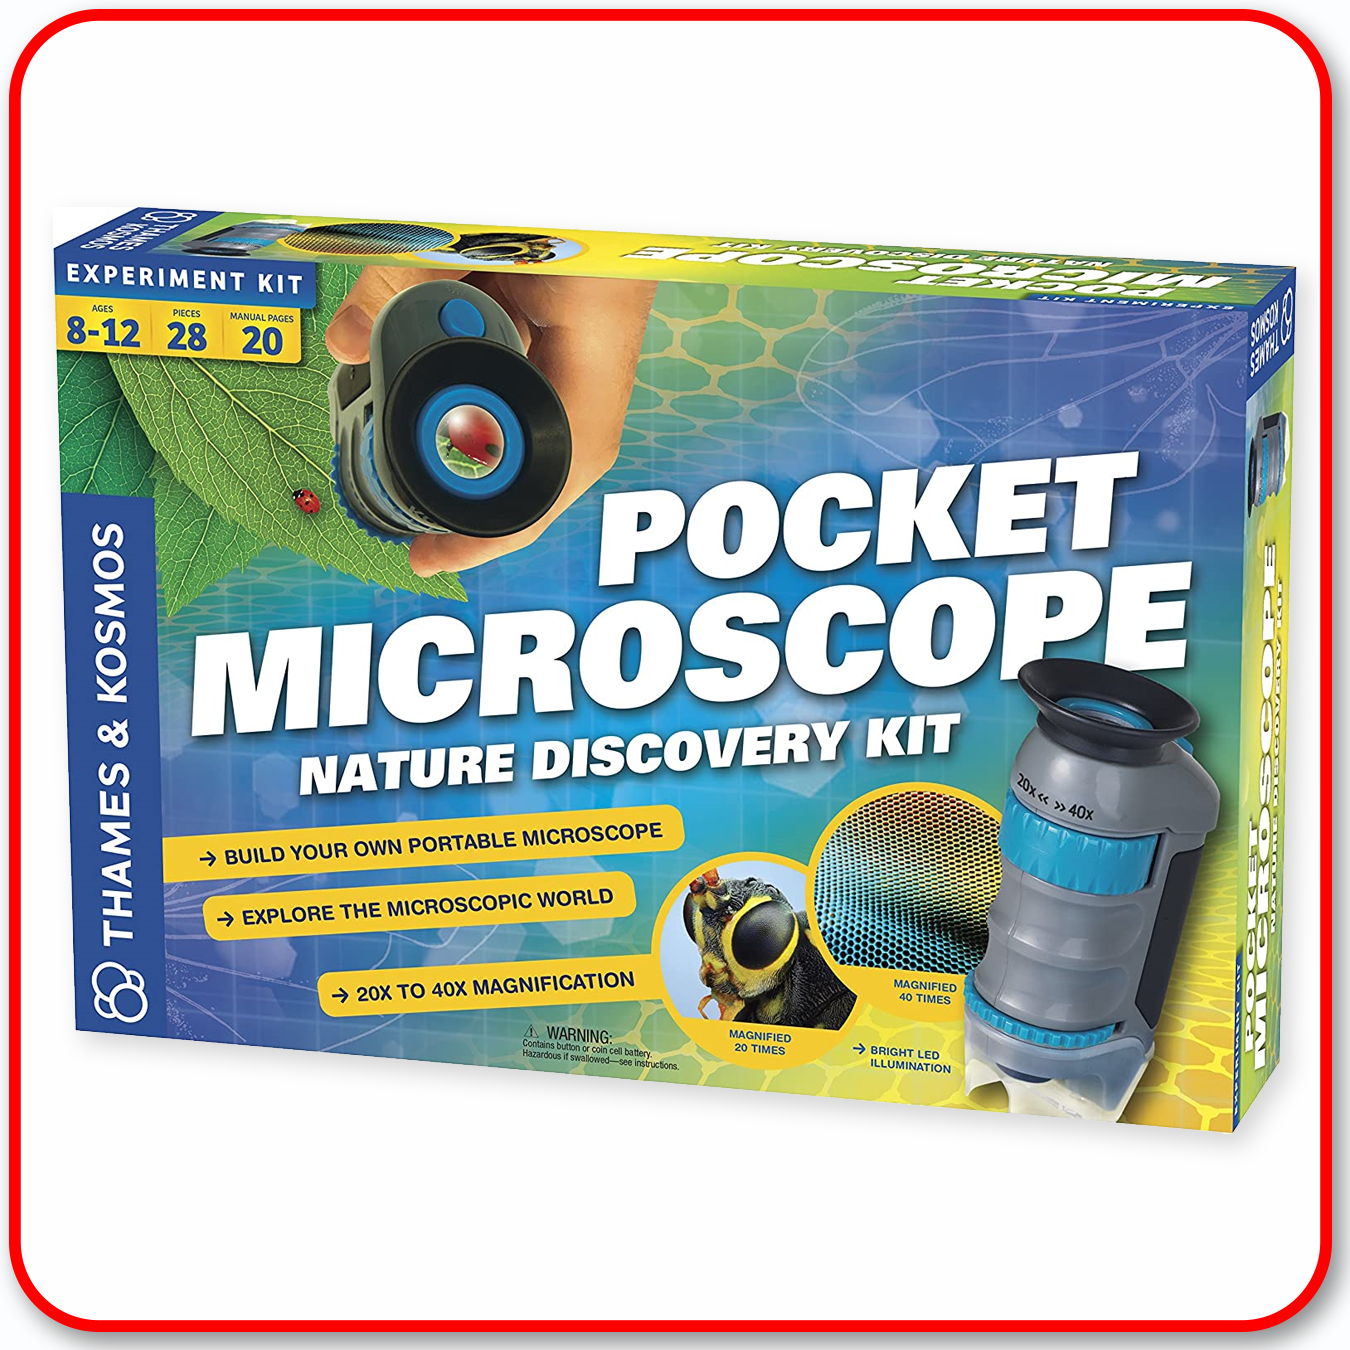 Pocket Microscope - Nature Discovery Kit